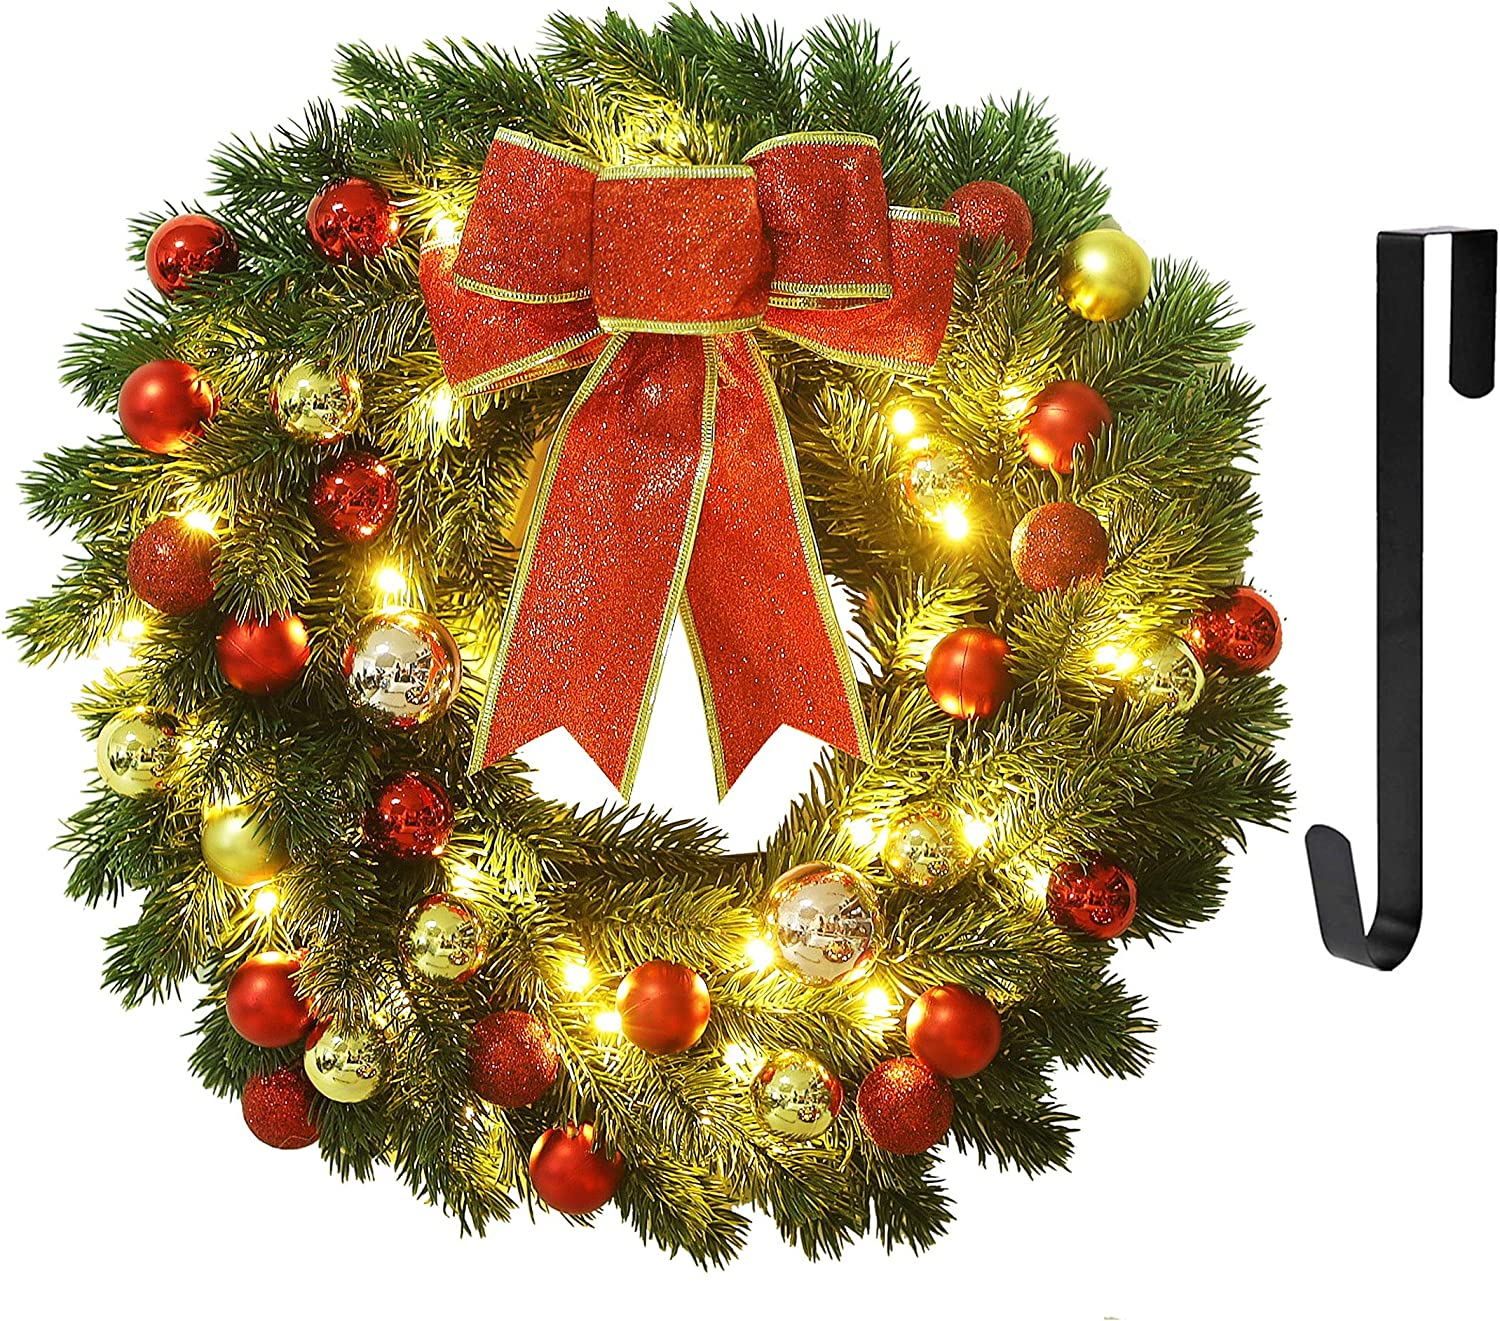 Juegoal 16 Inch Pre-Lit Christmas Wreath with Metal Hanger, Large Red Bow and Colored Balls, Battery Operated with Warm White 40 LEDs Lights, Front Door Spruce Lighted Wreath X-max Decorations